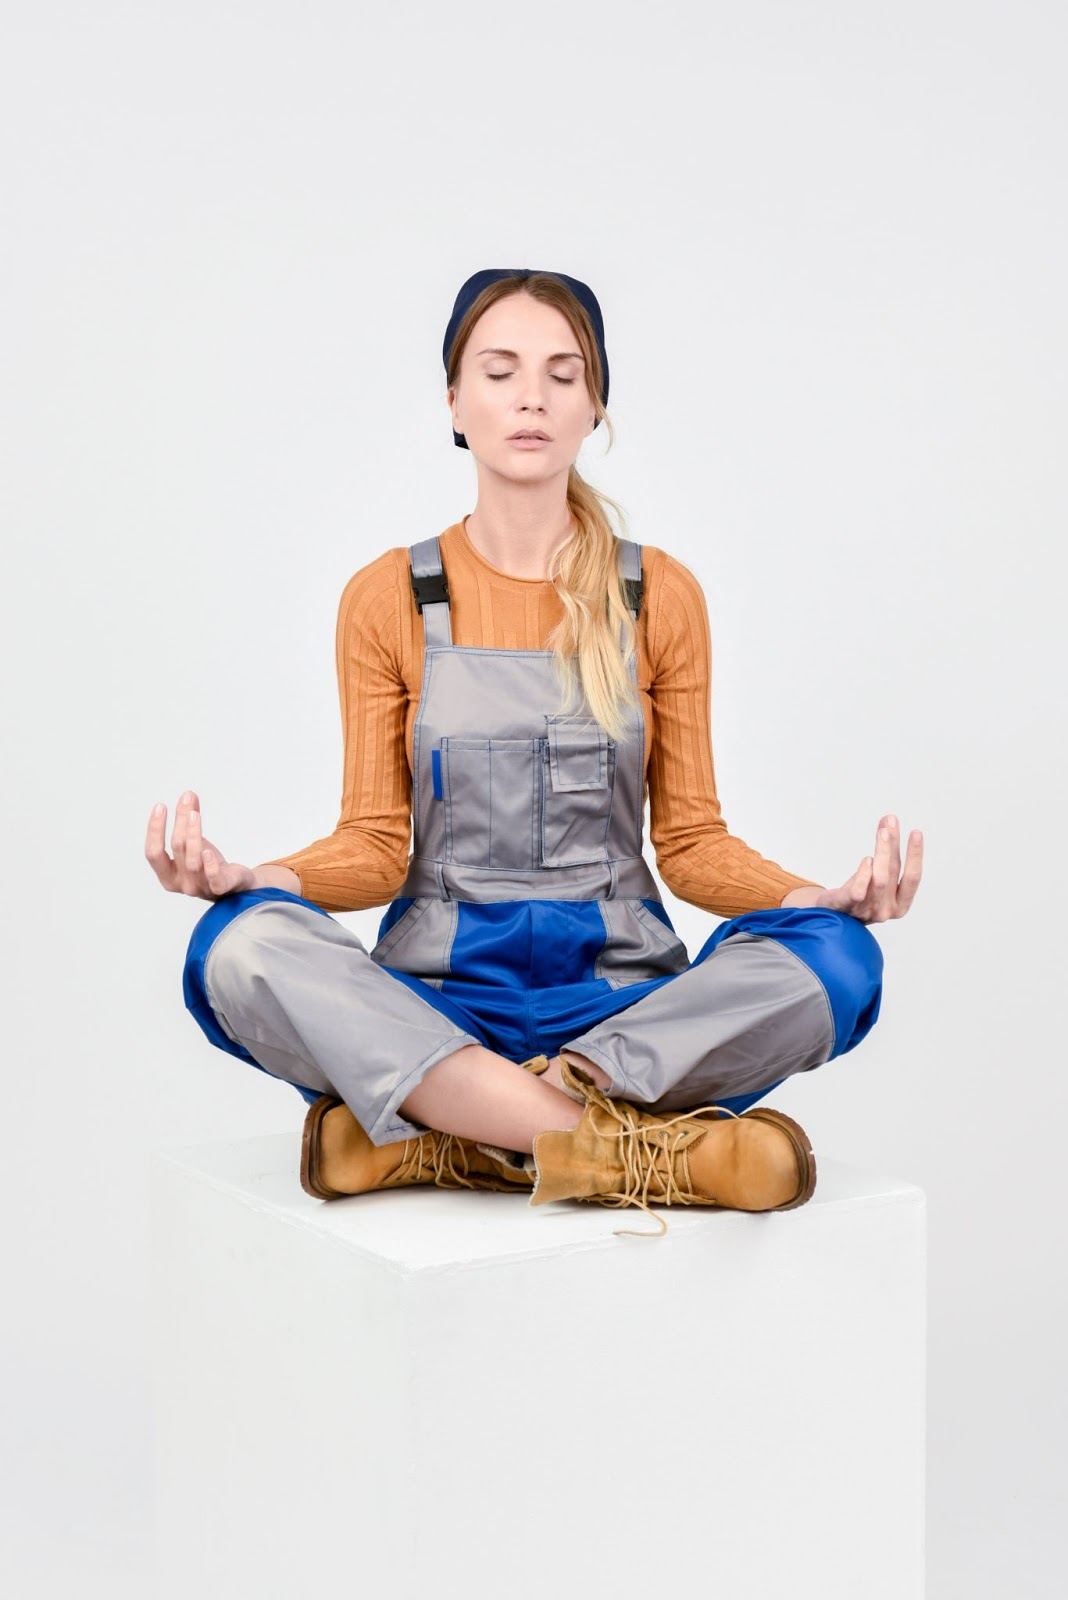 Get calm: enjoy the graphic set for the Yoga And Meditation day. Little meditation helps to start the workday